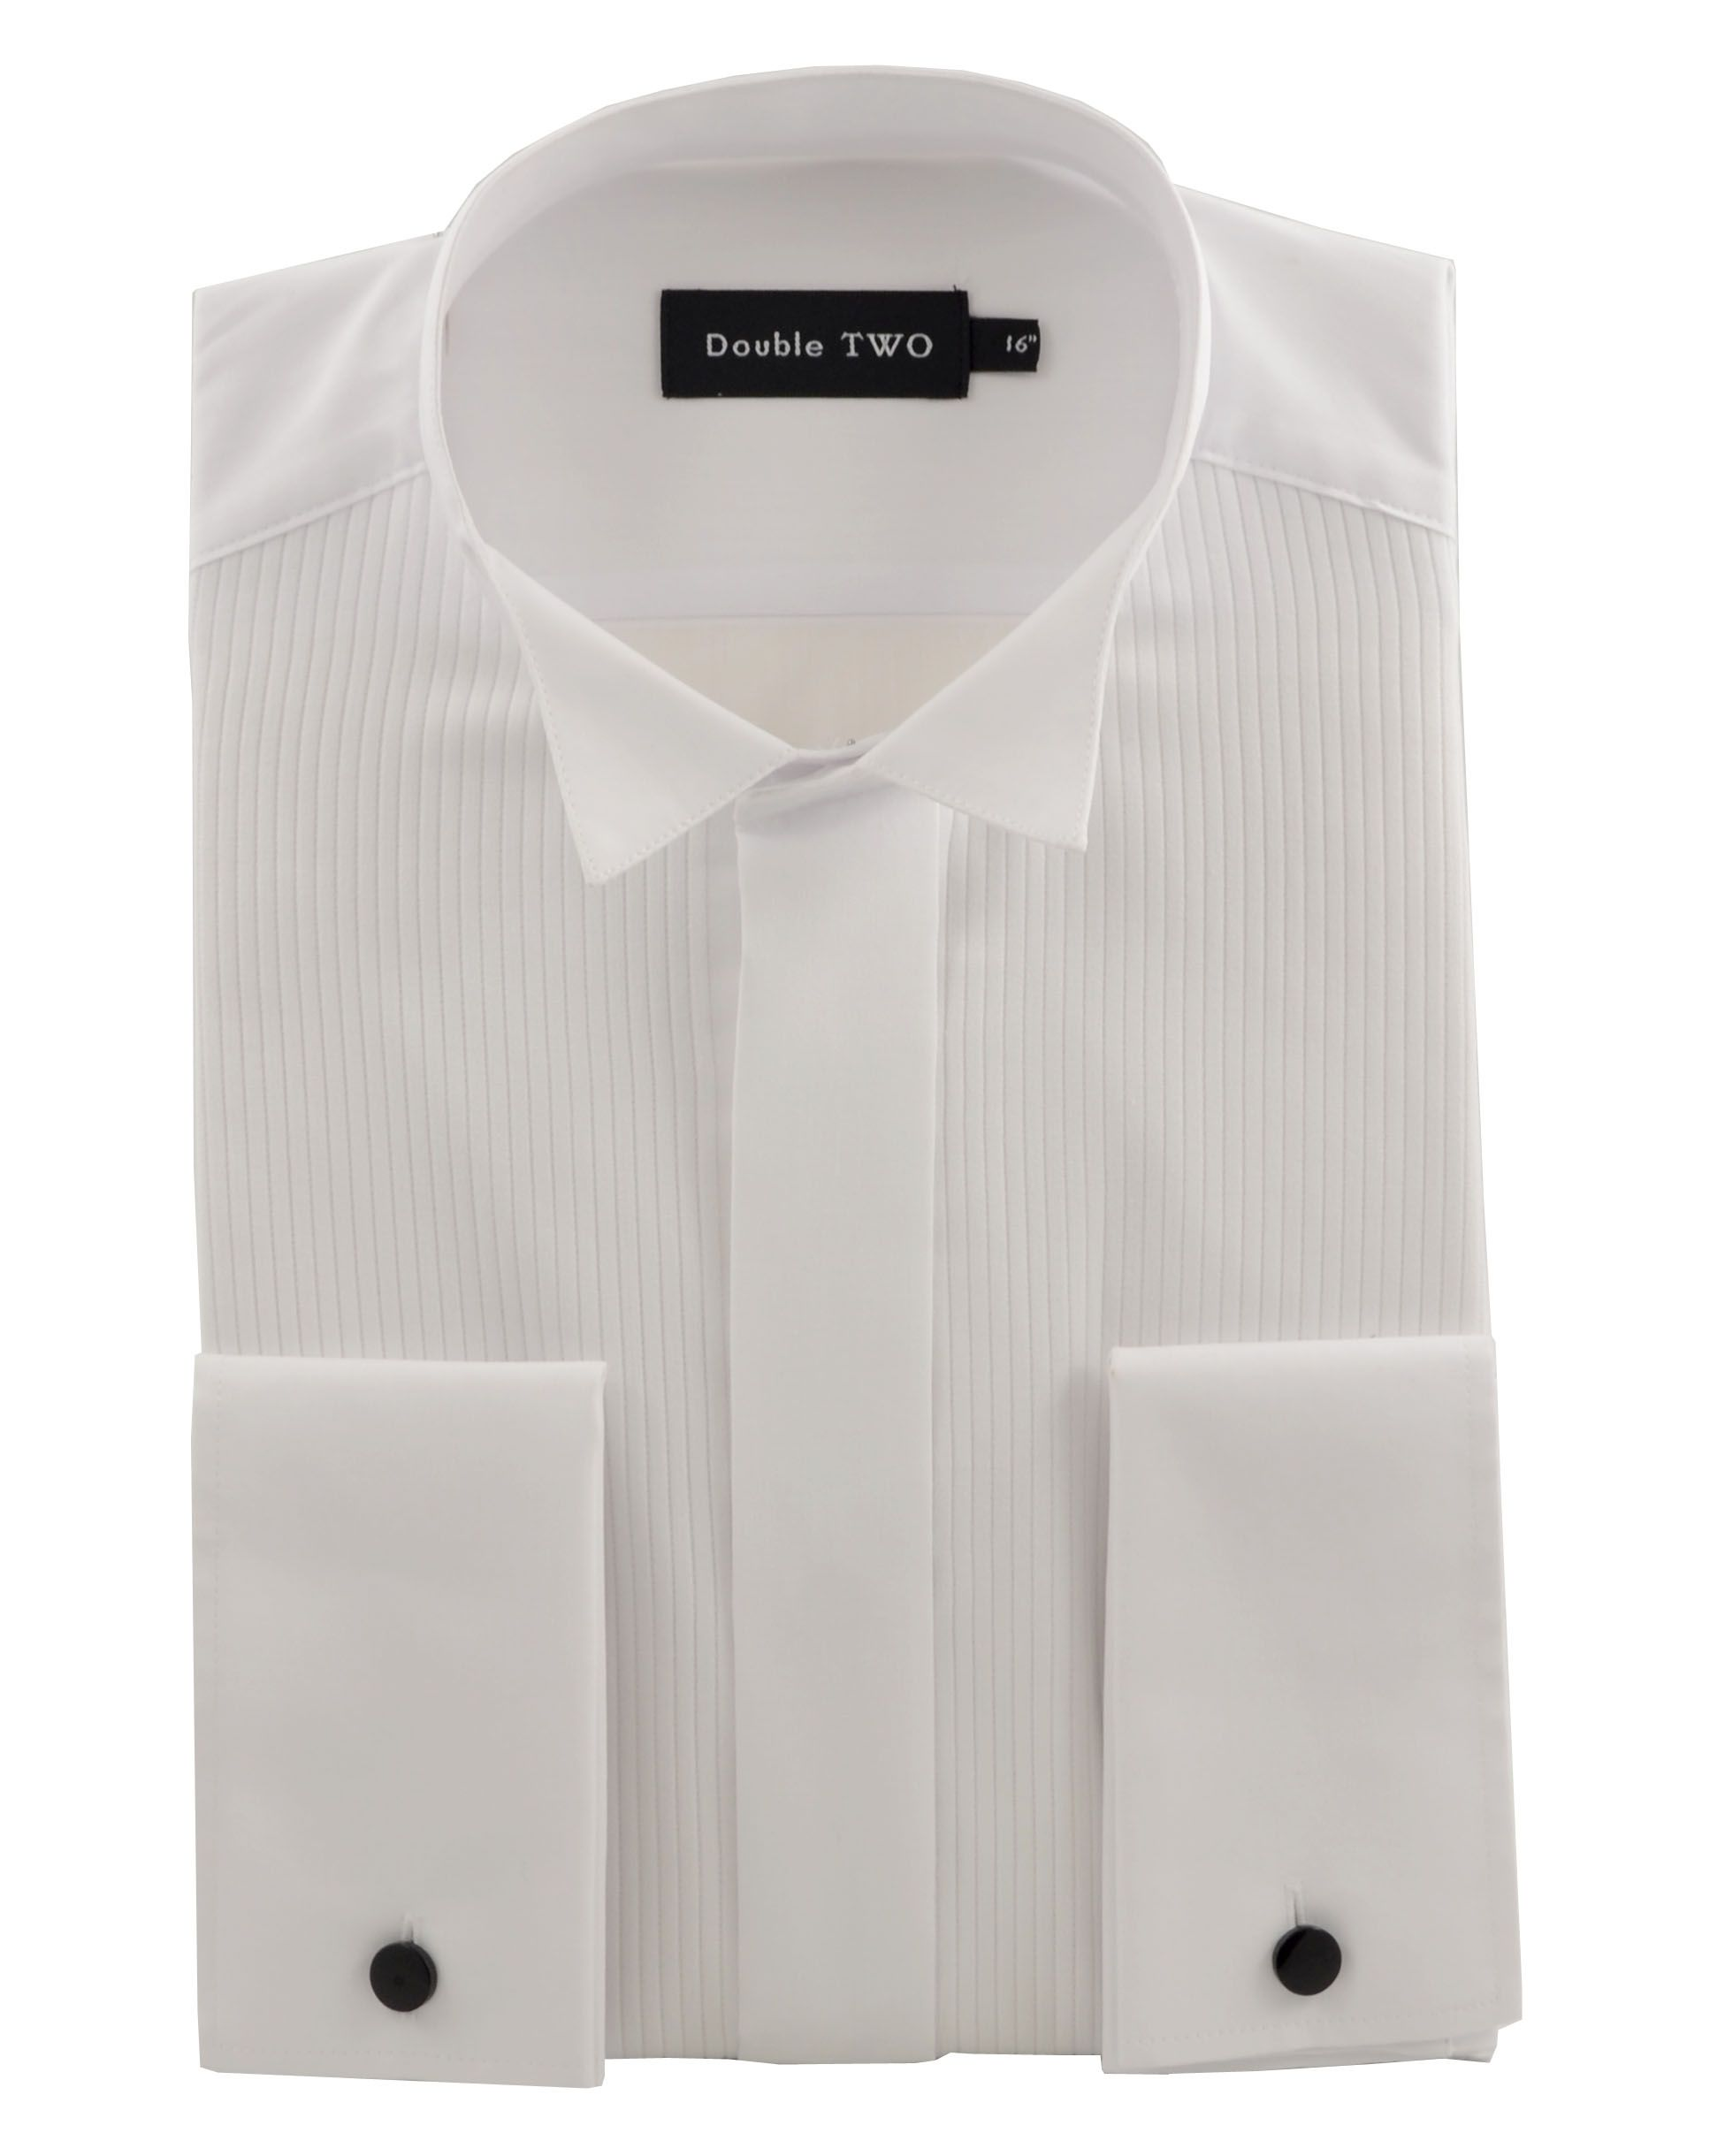 Mens Double TWO Plain Classic Fit Wing Collar Dress Shirt White